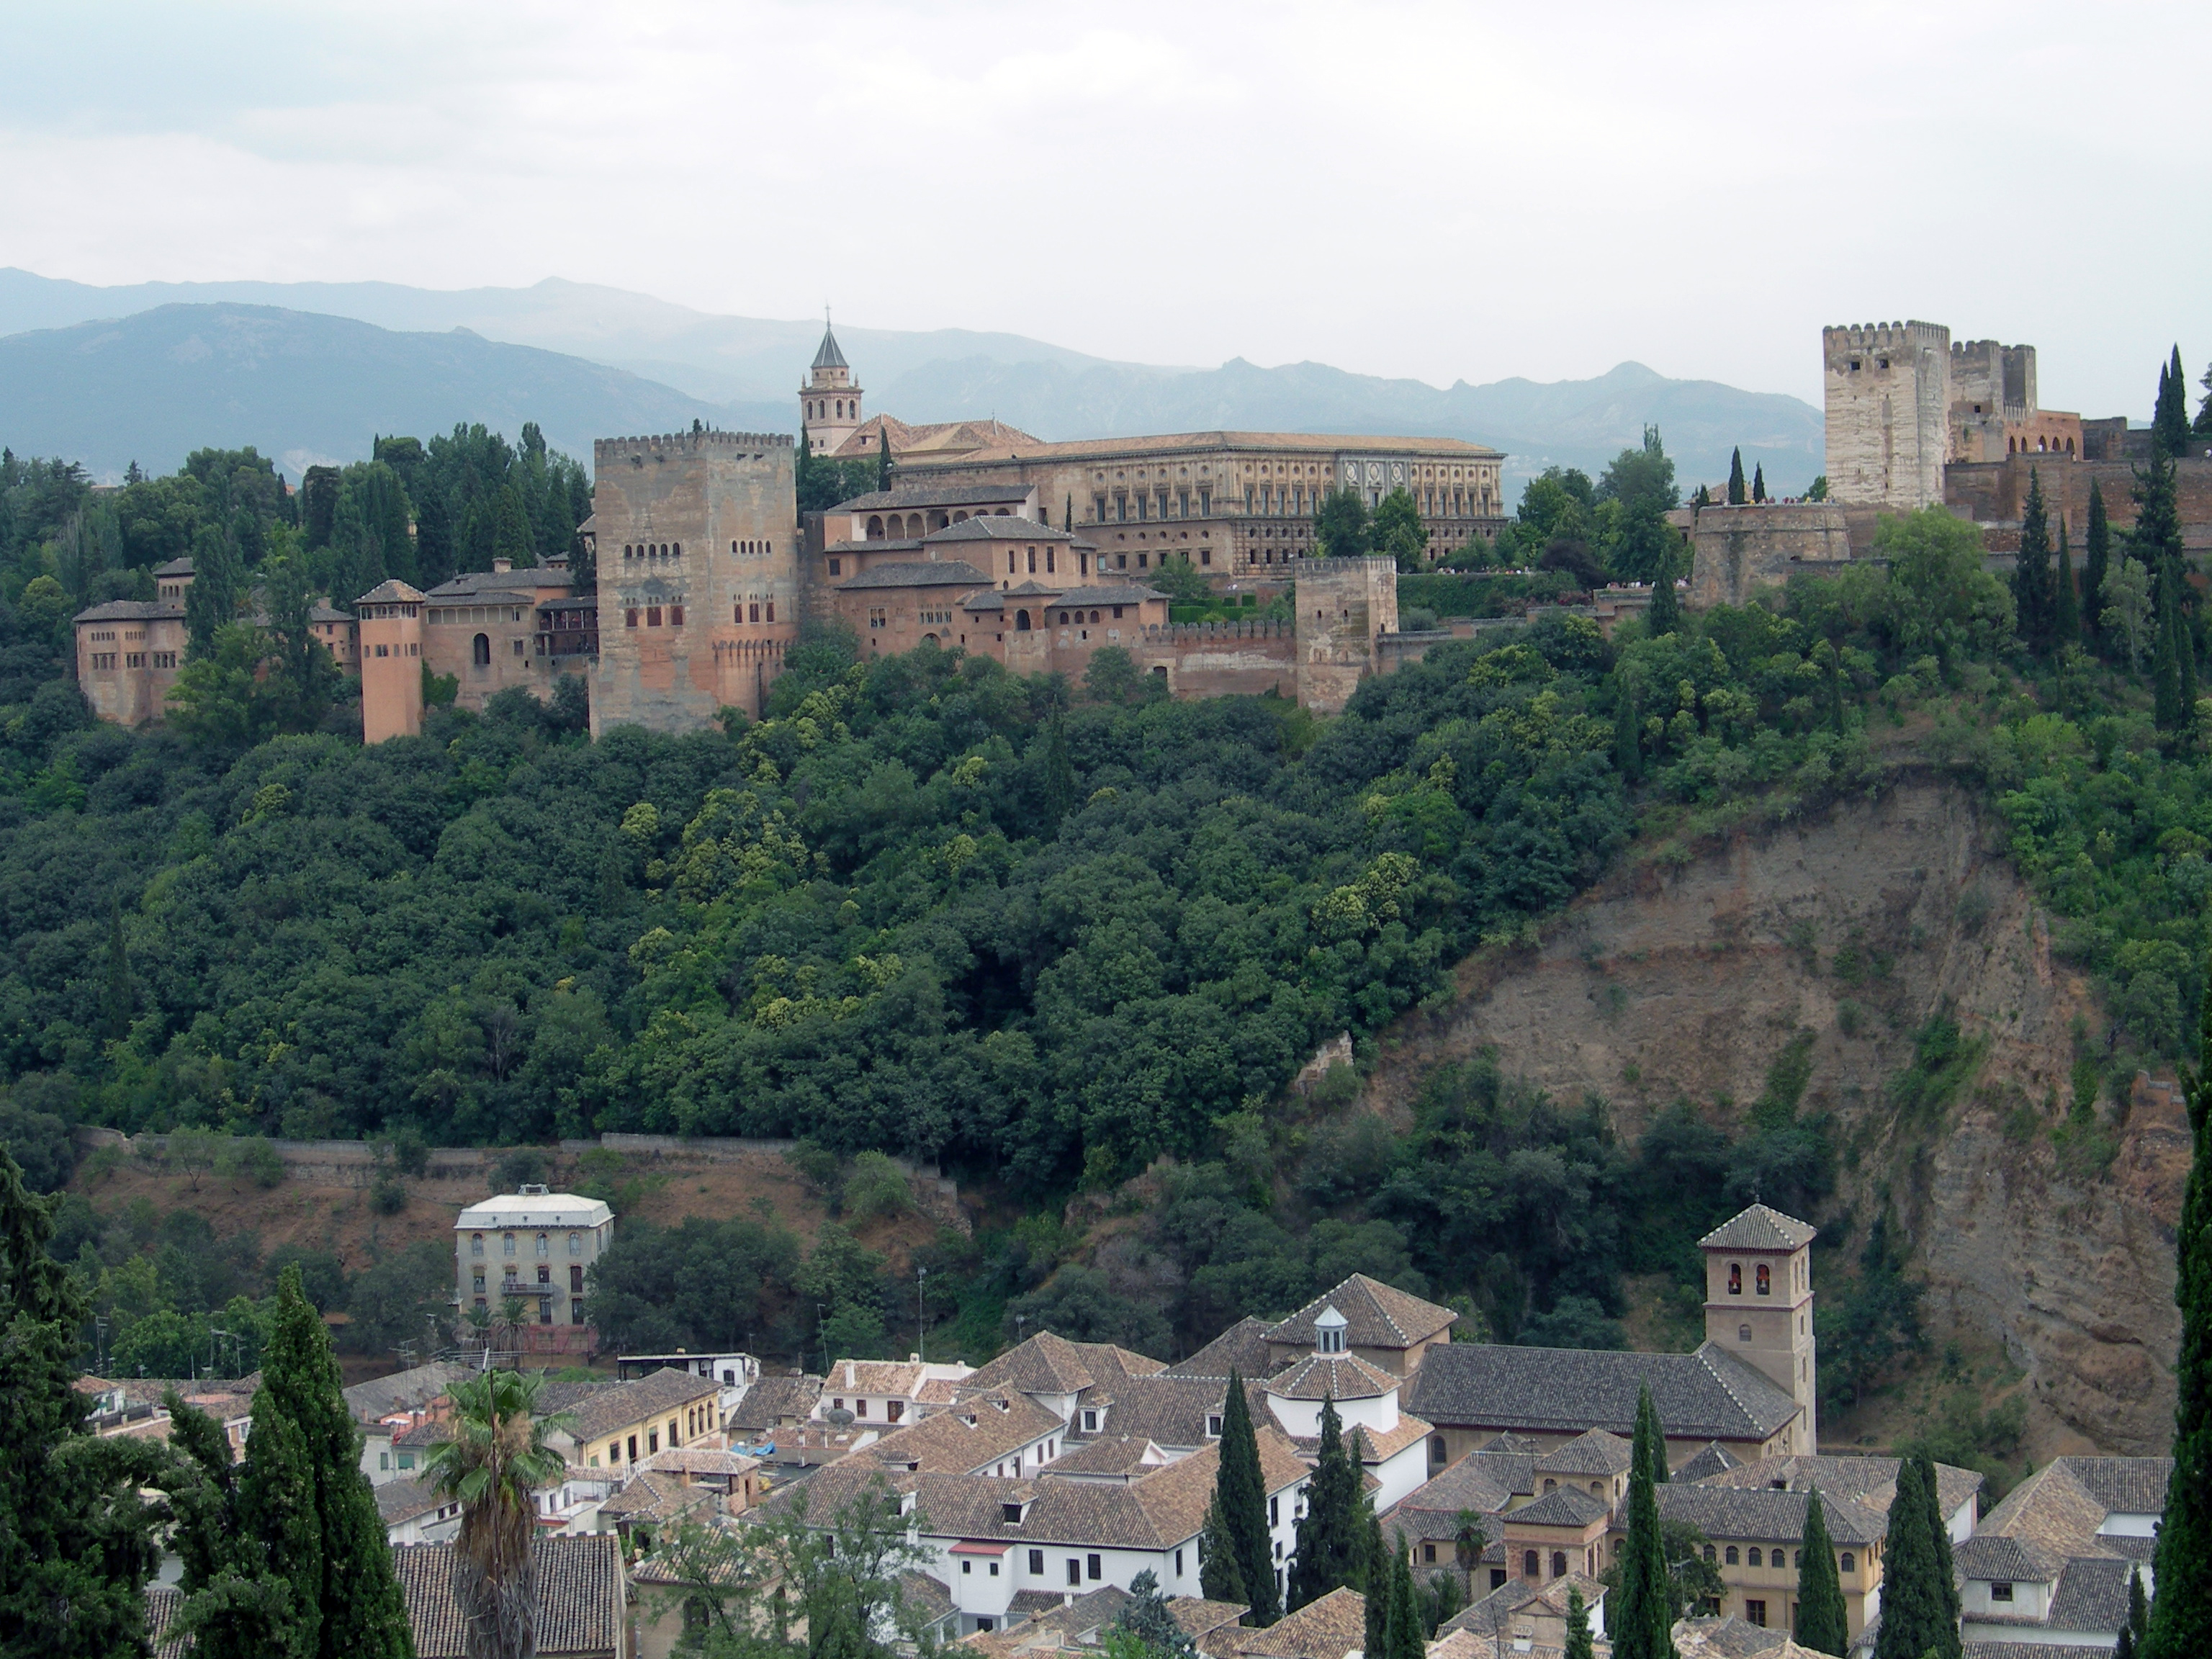 FIGURE 7. View of the Alhambra, the Muslim palace at Granada. Photo by Byron Hamann.